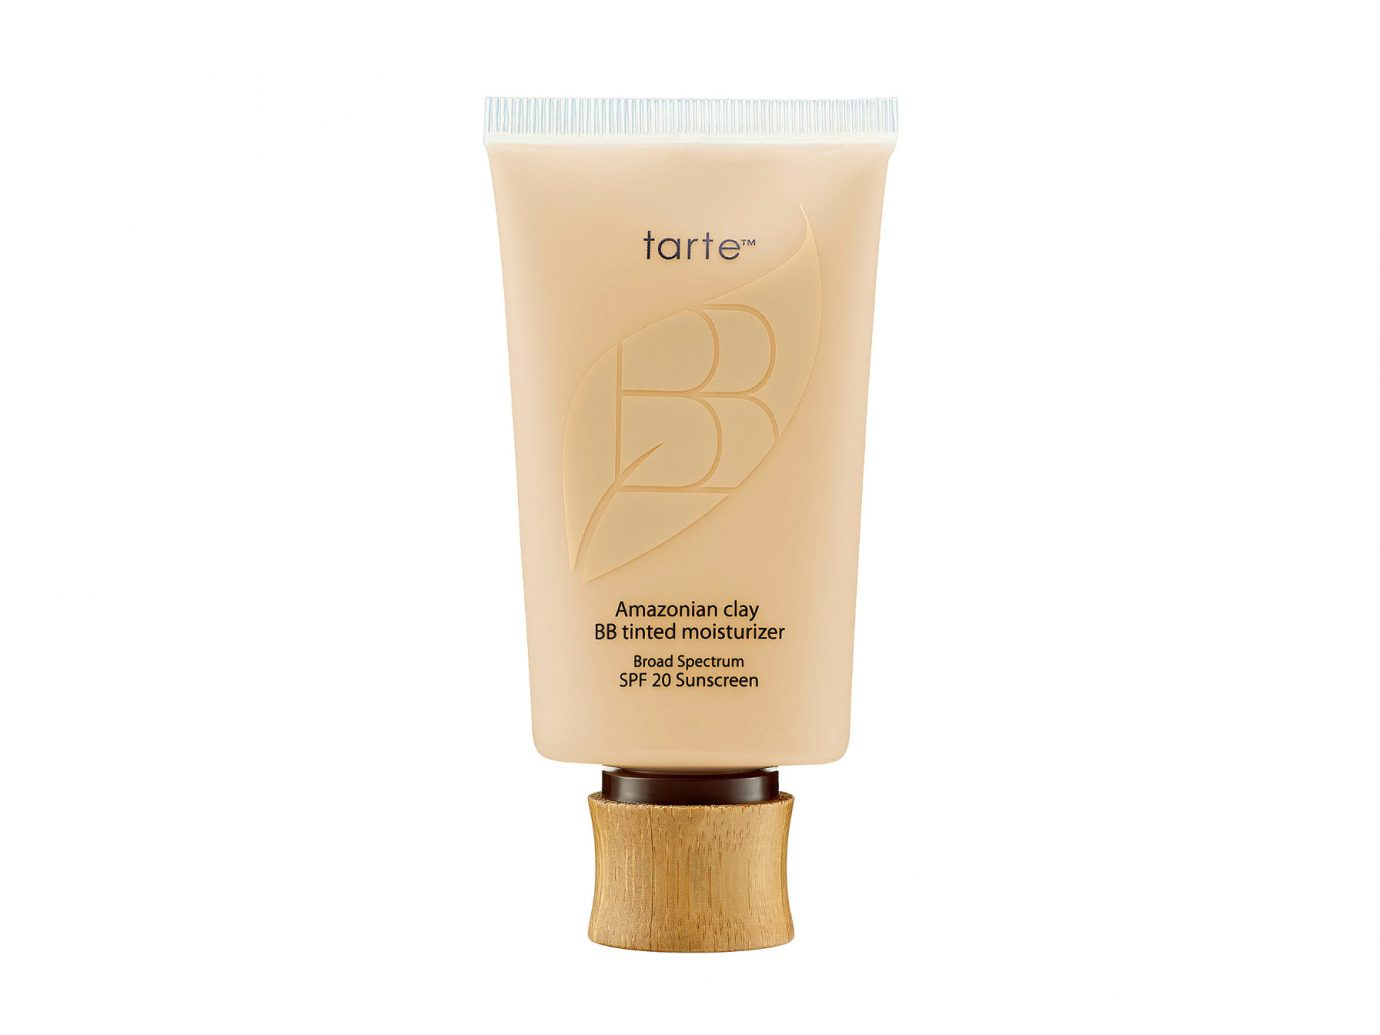 Summer Glow product Tarte BB Tinted Moisturizer